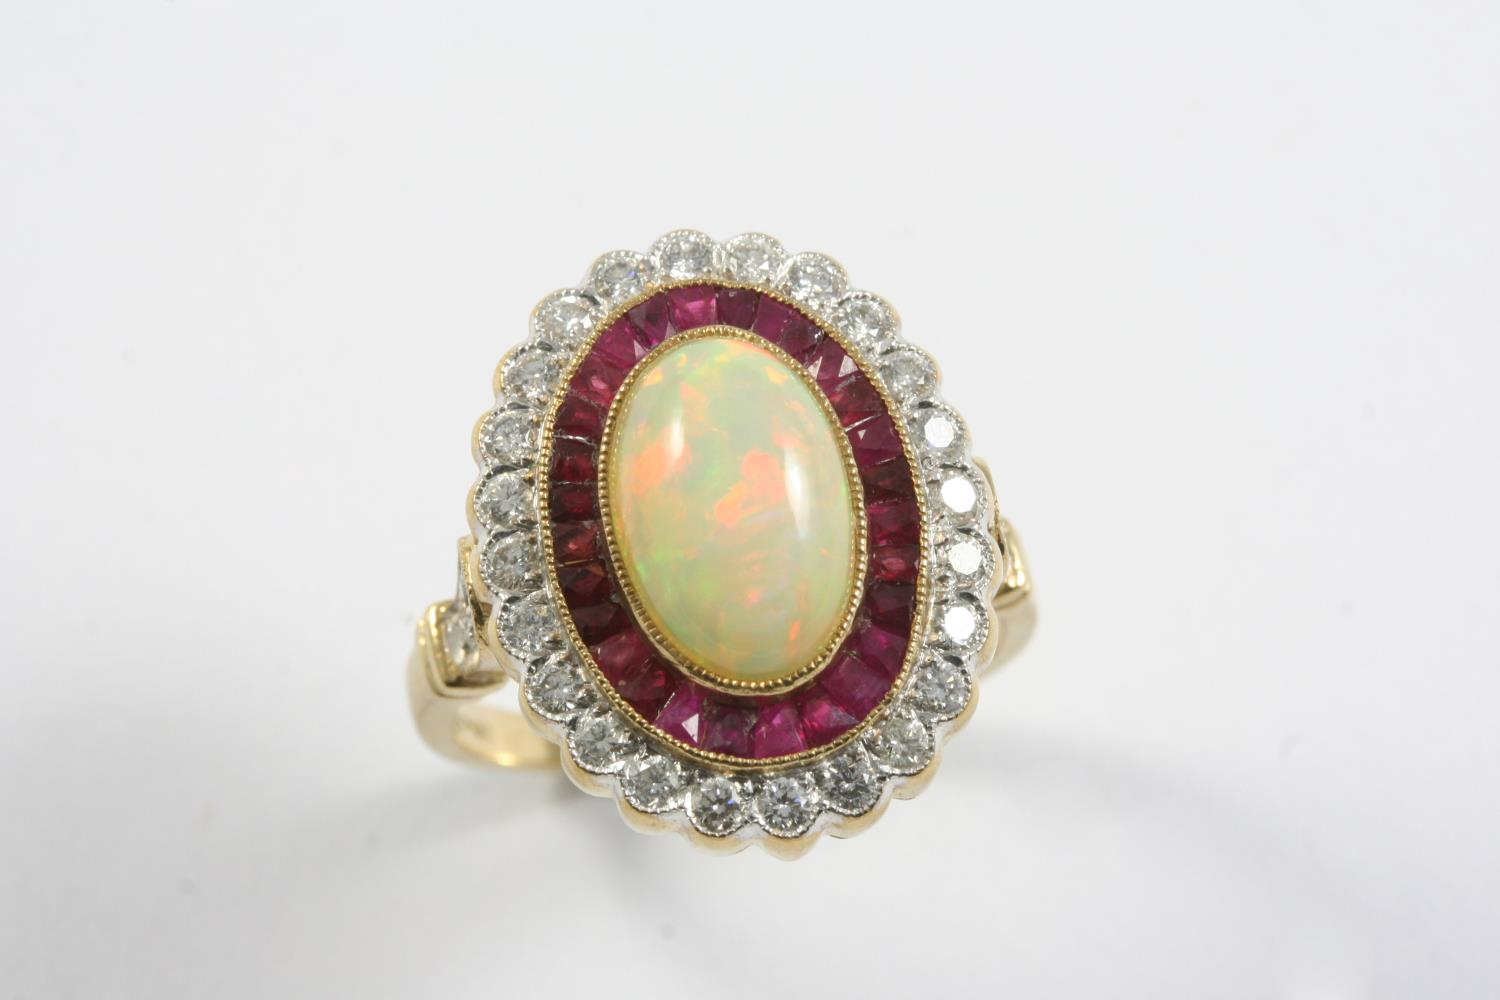 AN OPAL, RUBY AND DIAMOND CLUSTER RING the oval-shaped white opal is set within a surround of